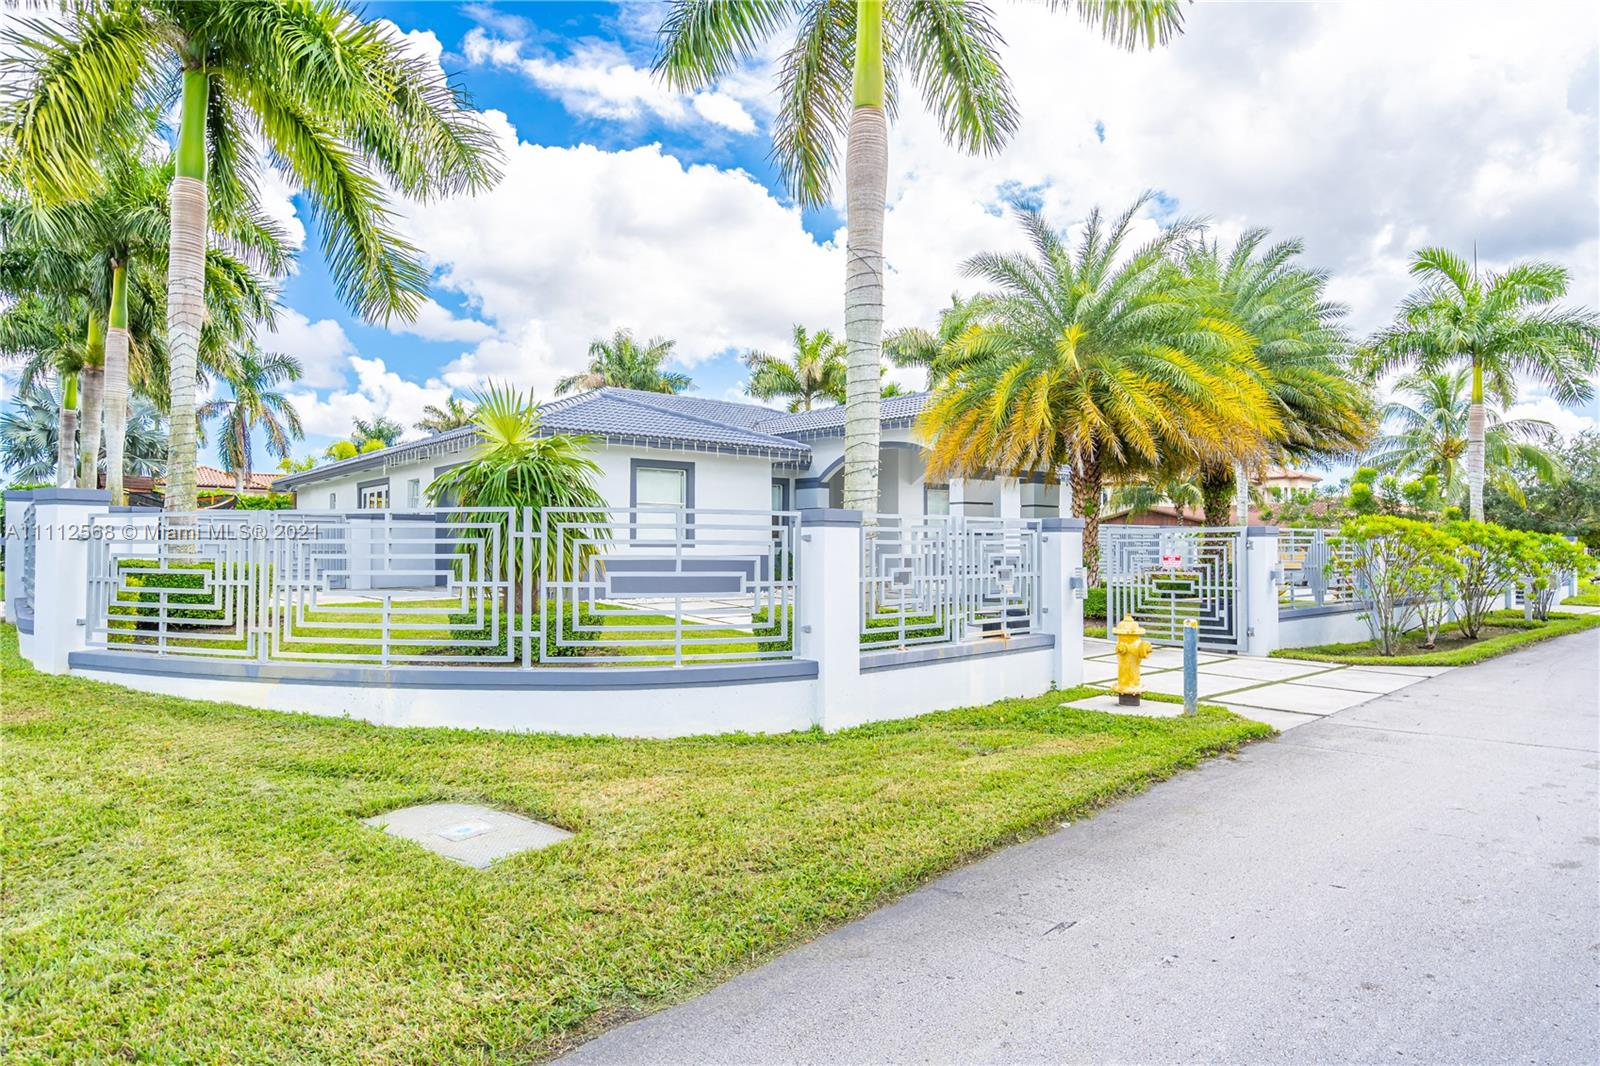 Single Family Home,For Sale,595 NW 120th Ave, Miami, Florida 33182,Brickell,realty,broker,condos near me